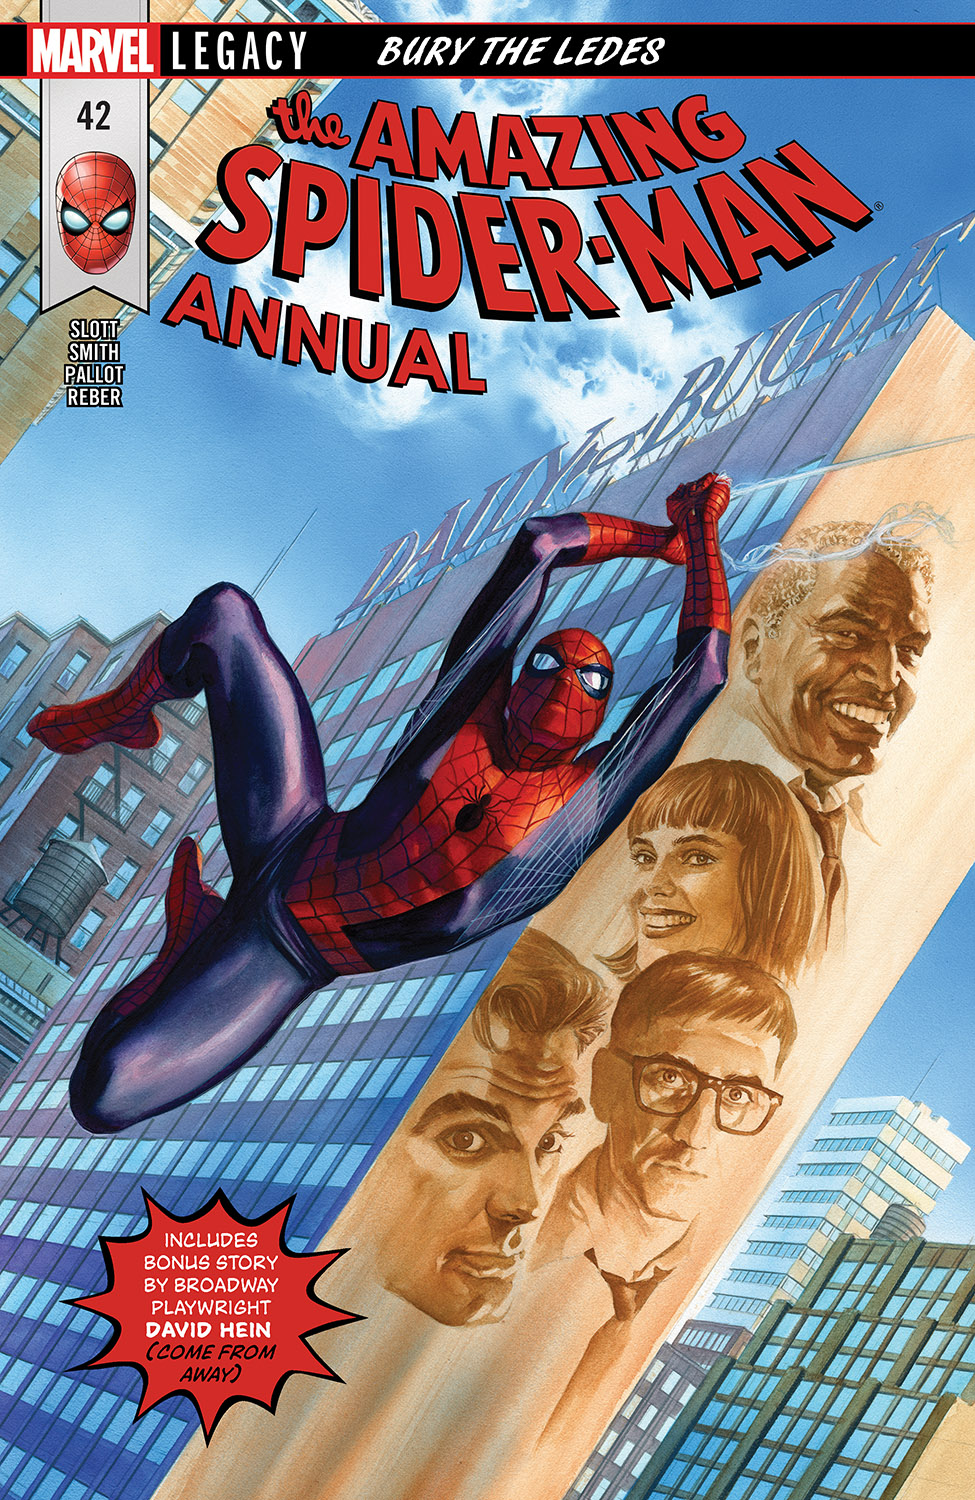 AMAZING SPIDER-MAN ANNUAL 42 (2018) #42